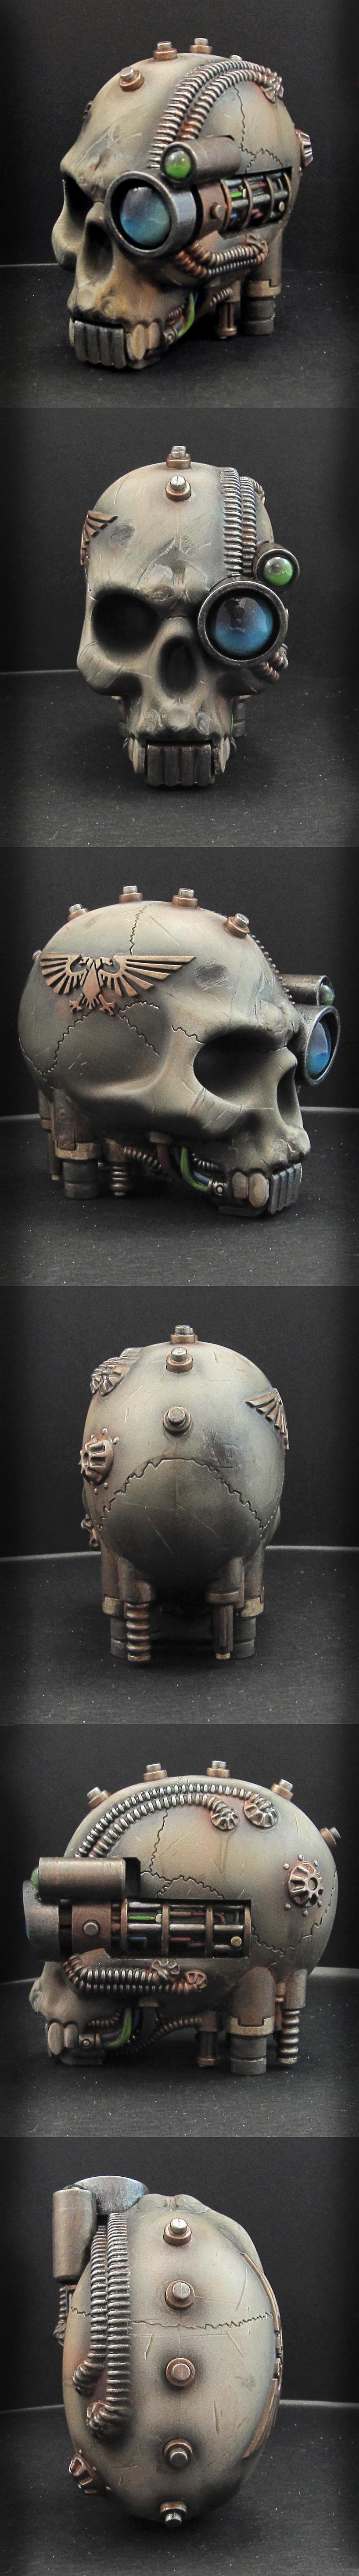 Airbrush, Munitorium, Servo, Skull, Tape Measure, Weathered